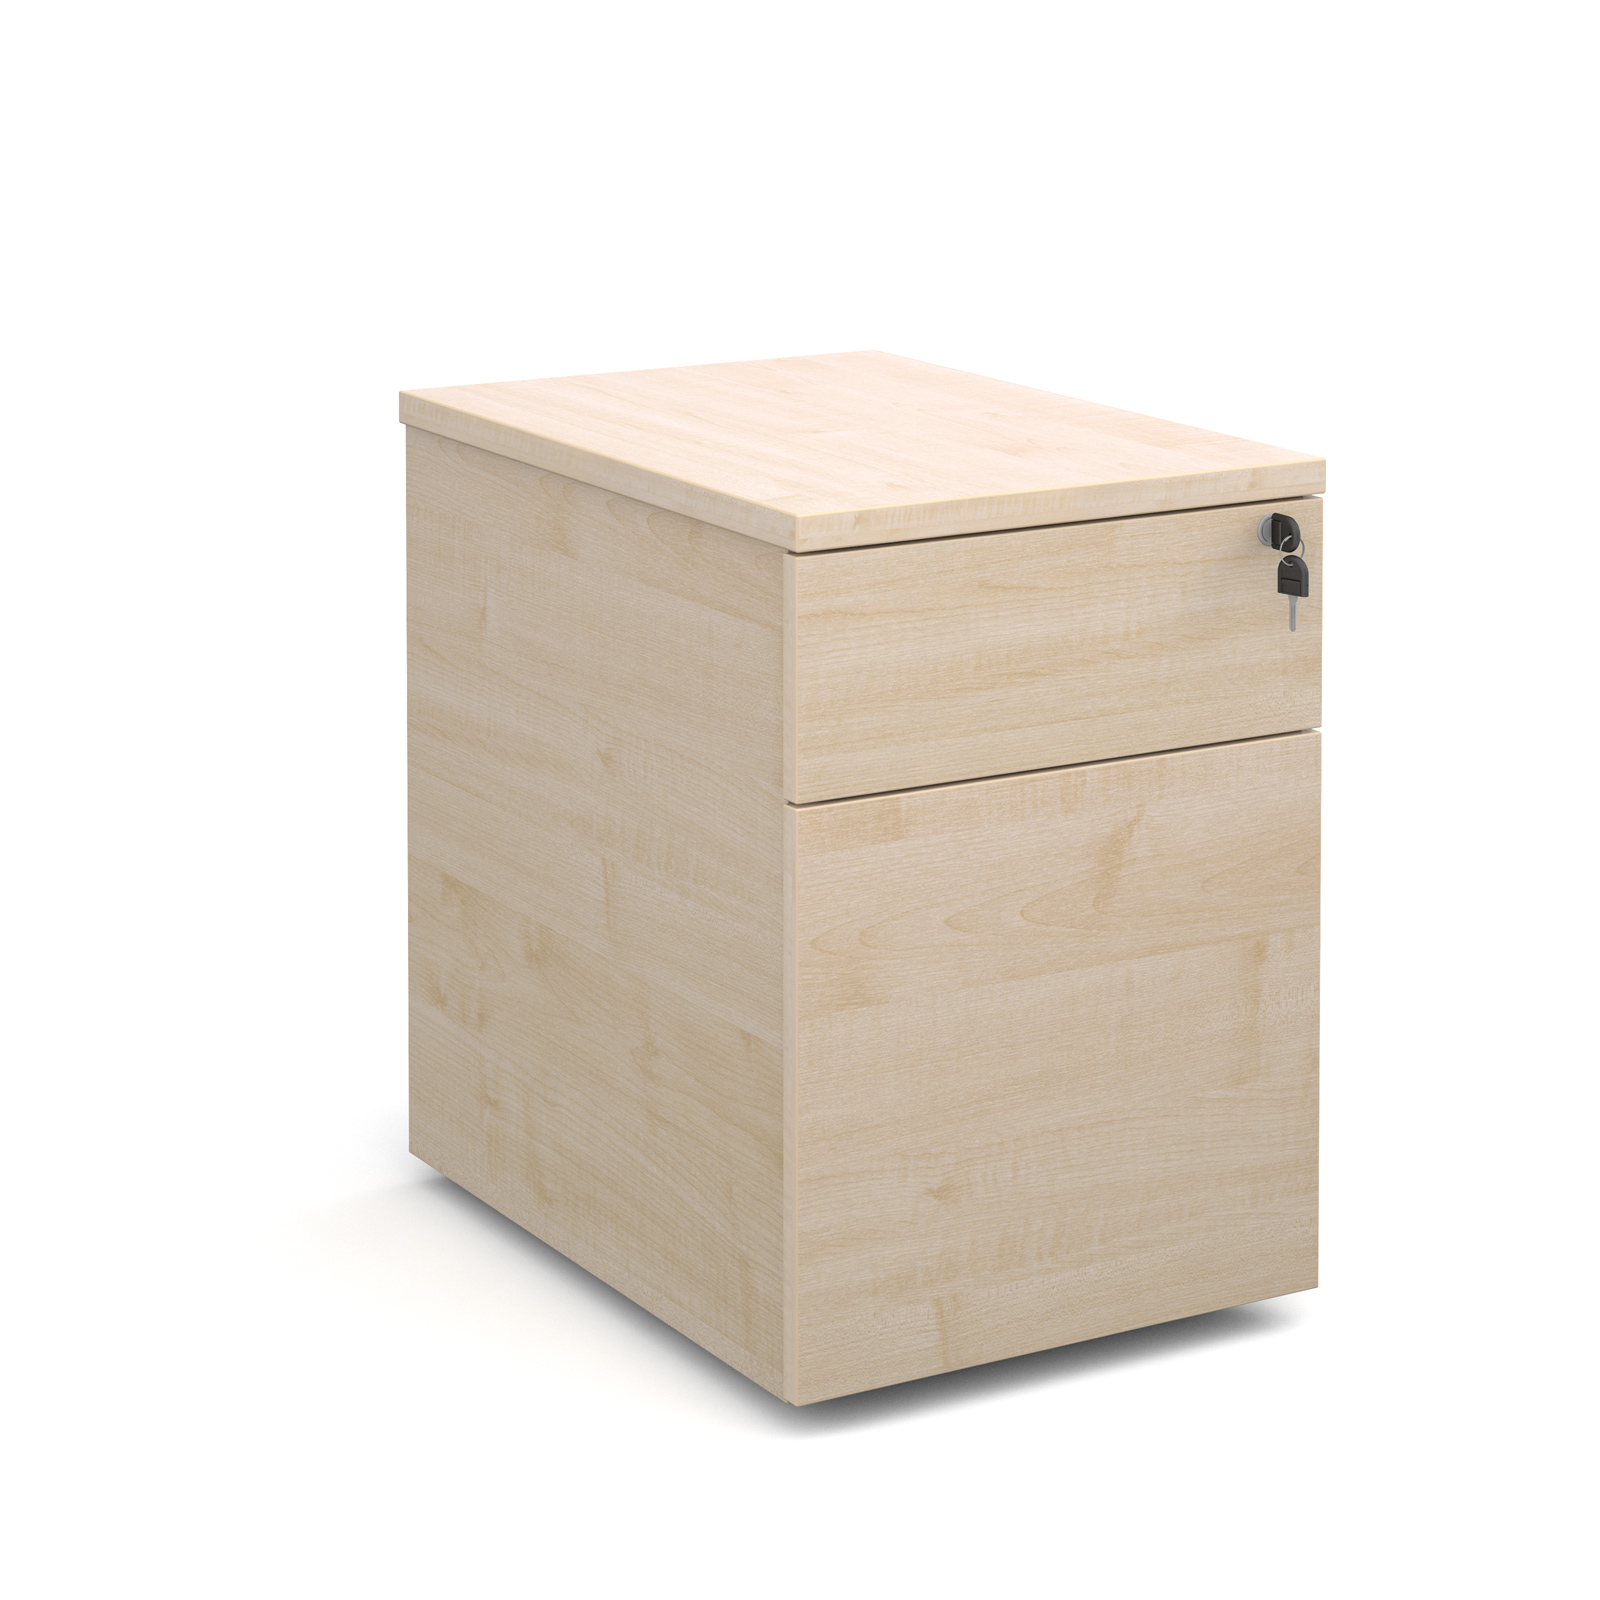 2 Drawer Mobile Pedestal in Maple